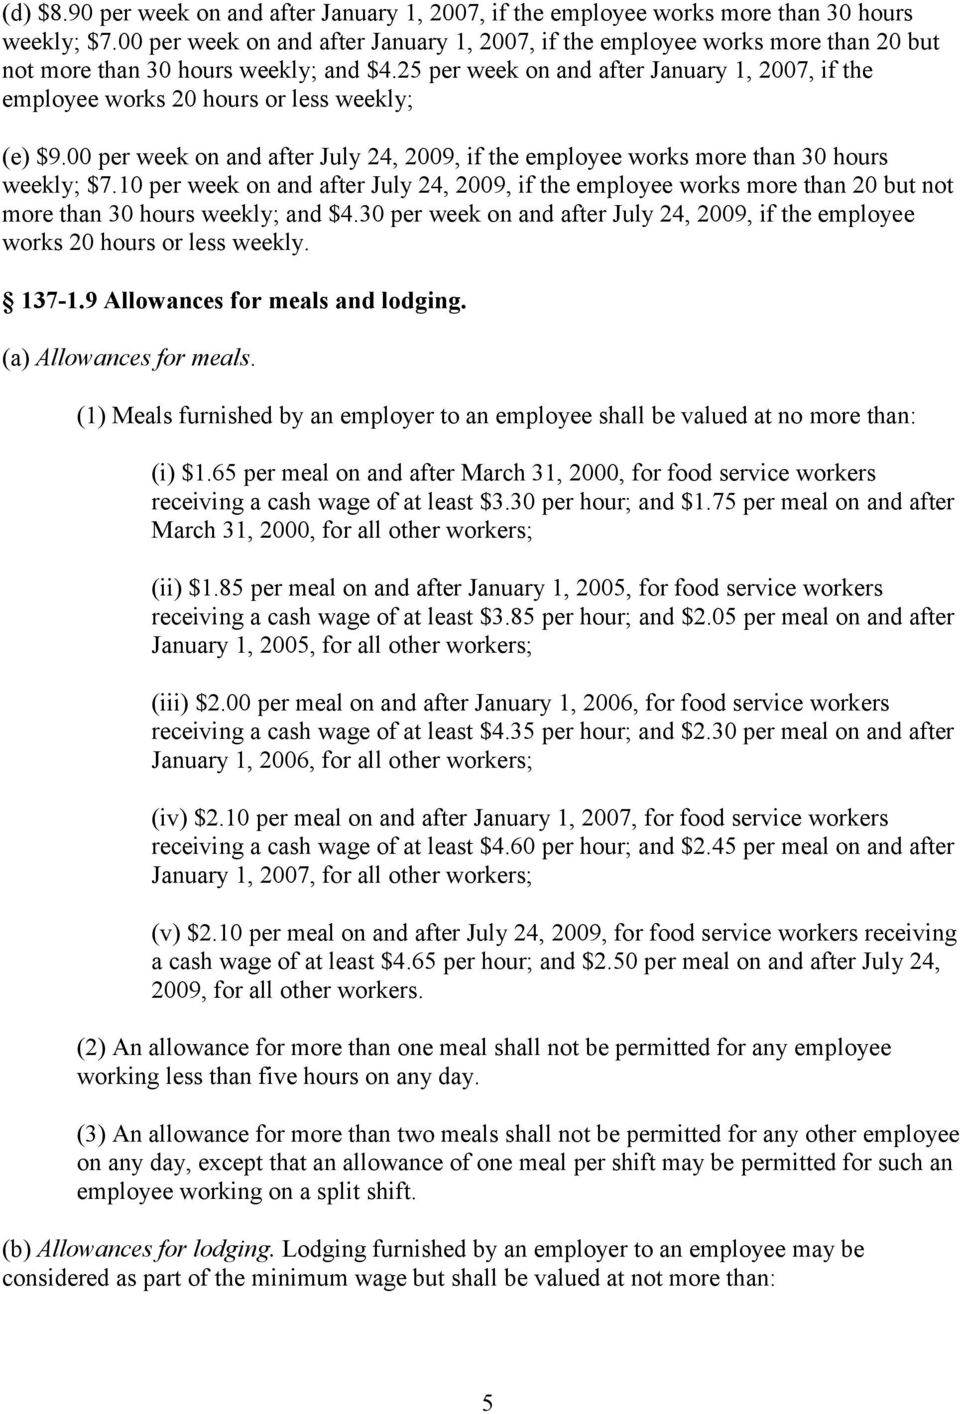 25 per week on and after January 1, 2007, if the employee works 20 hours or less weekly; (e) $9.00 per week on and after July 24, 2009, if the employee works more than 30 hours weekly; $7.